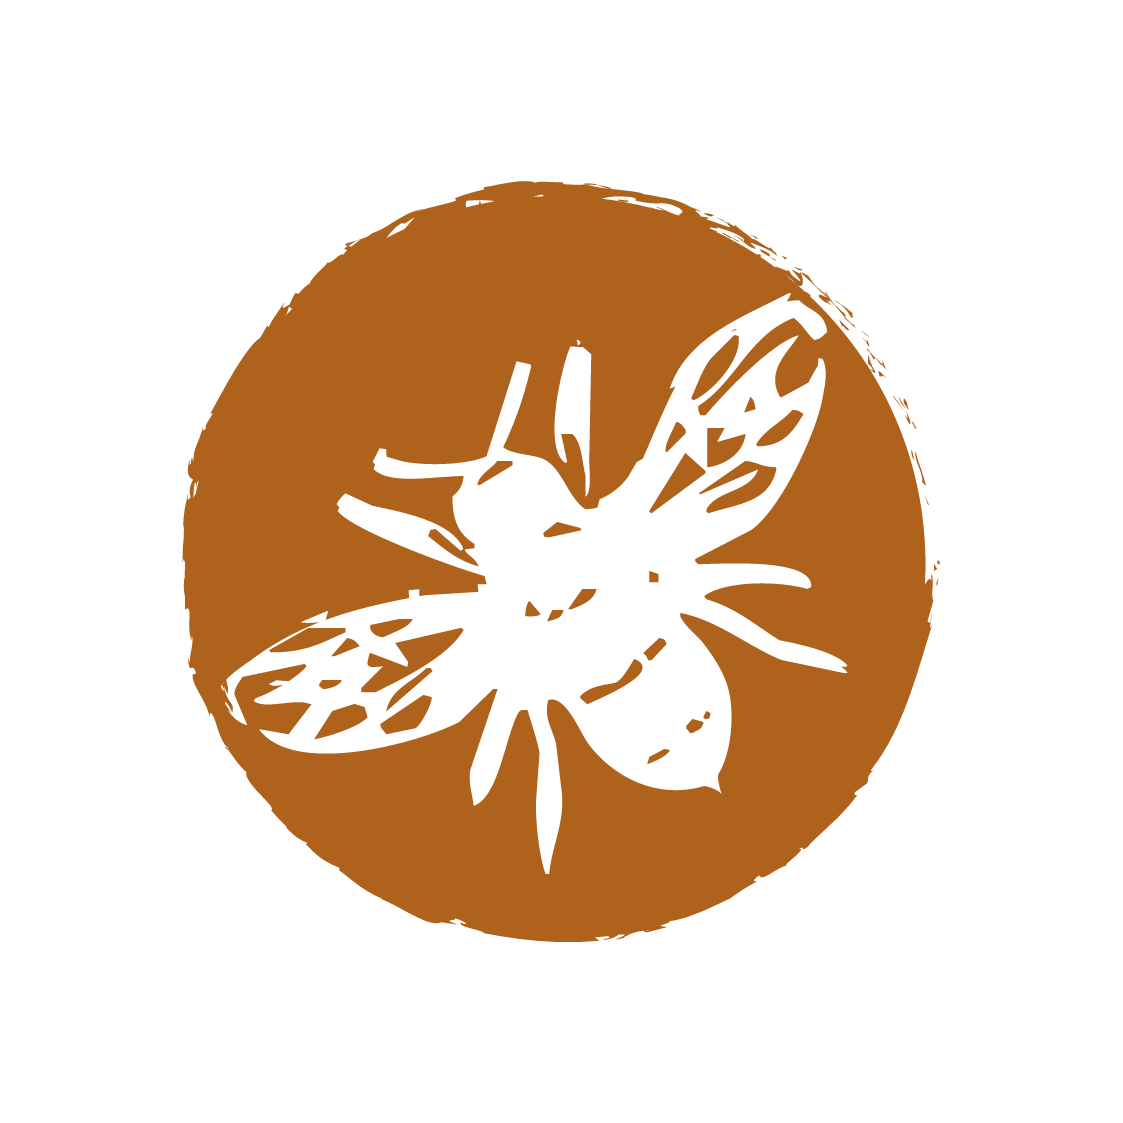 bee-inverted-notext-artboard-01